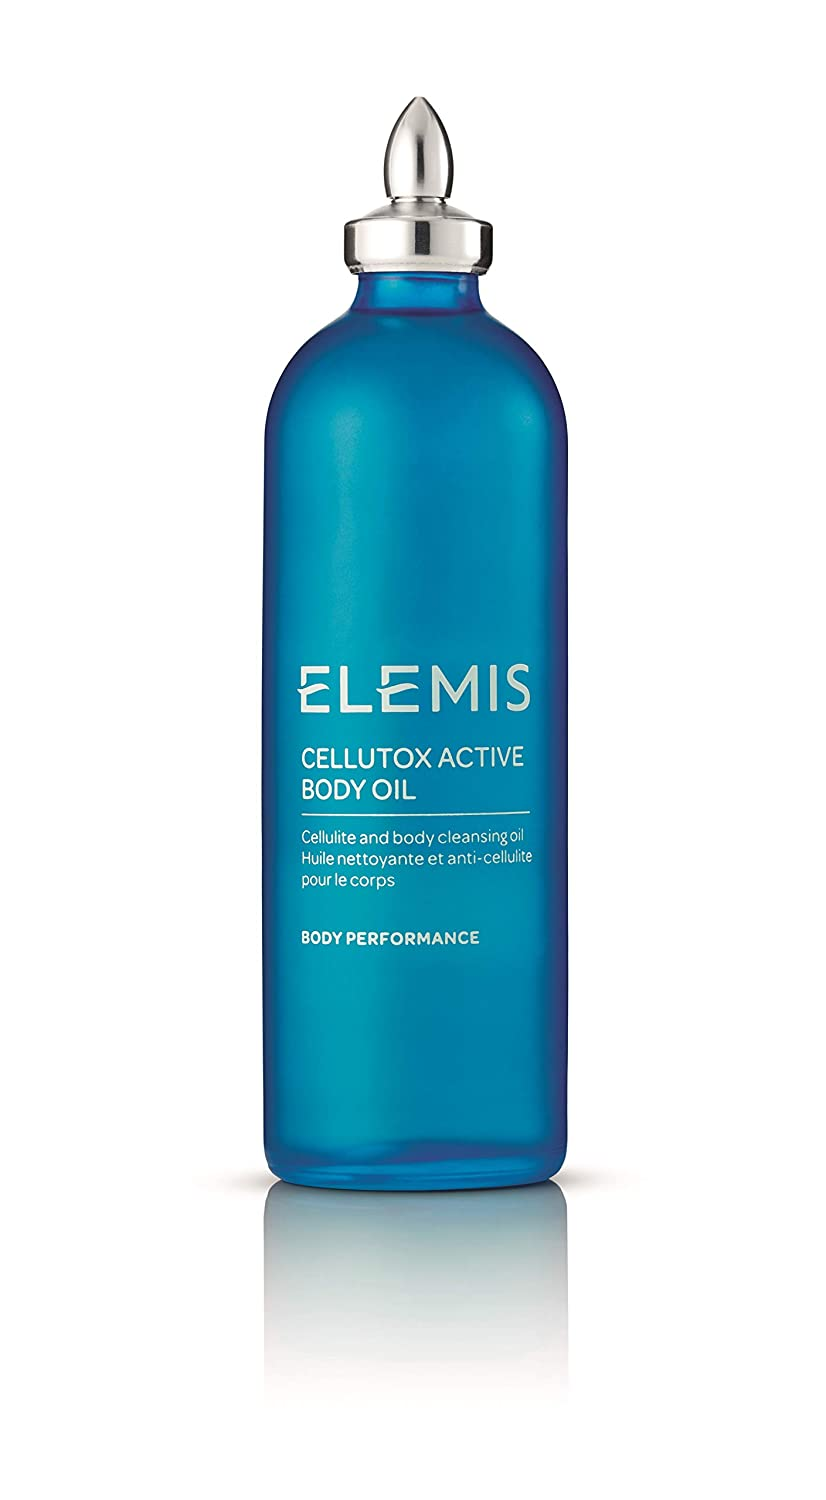 ELEMIS Cellutox Active Body Oil, Cellulite and Body Cleansing Oil, 3.3 Fl Oz